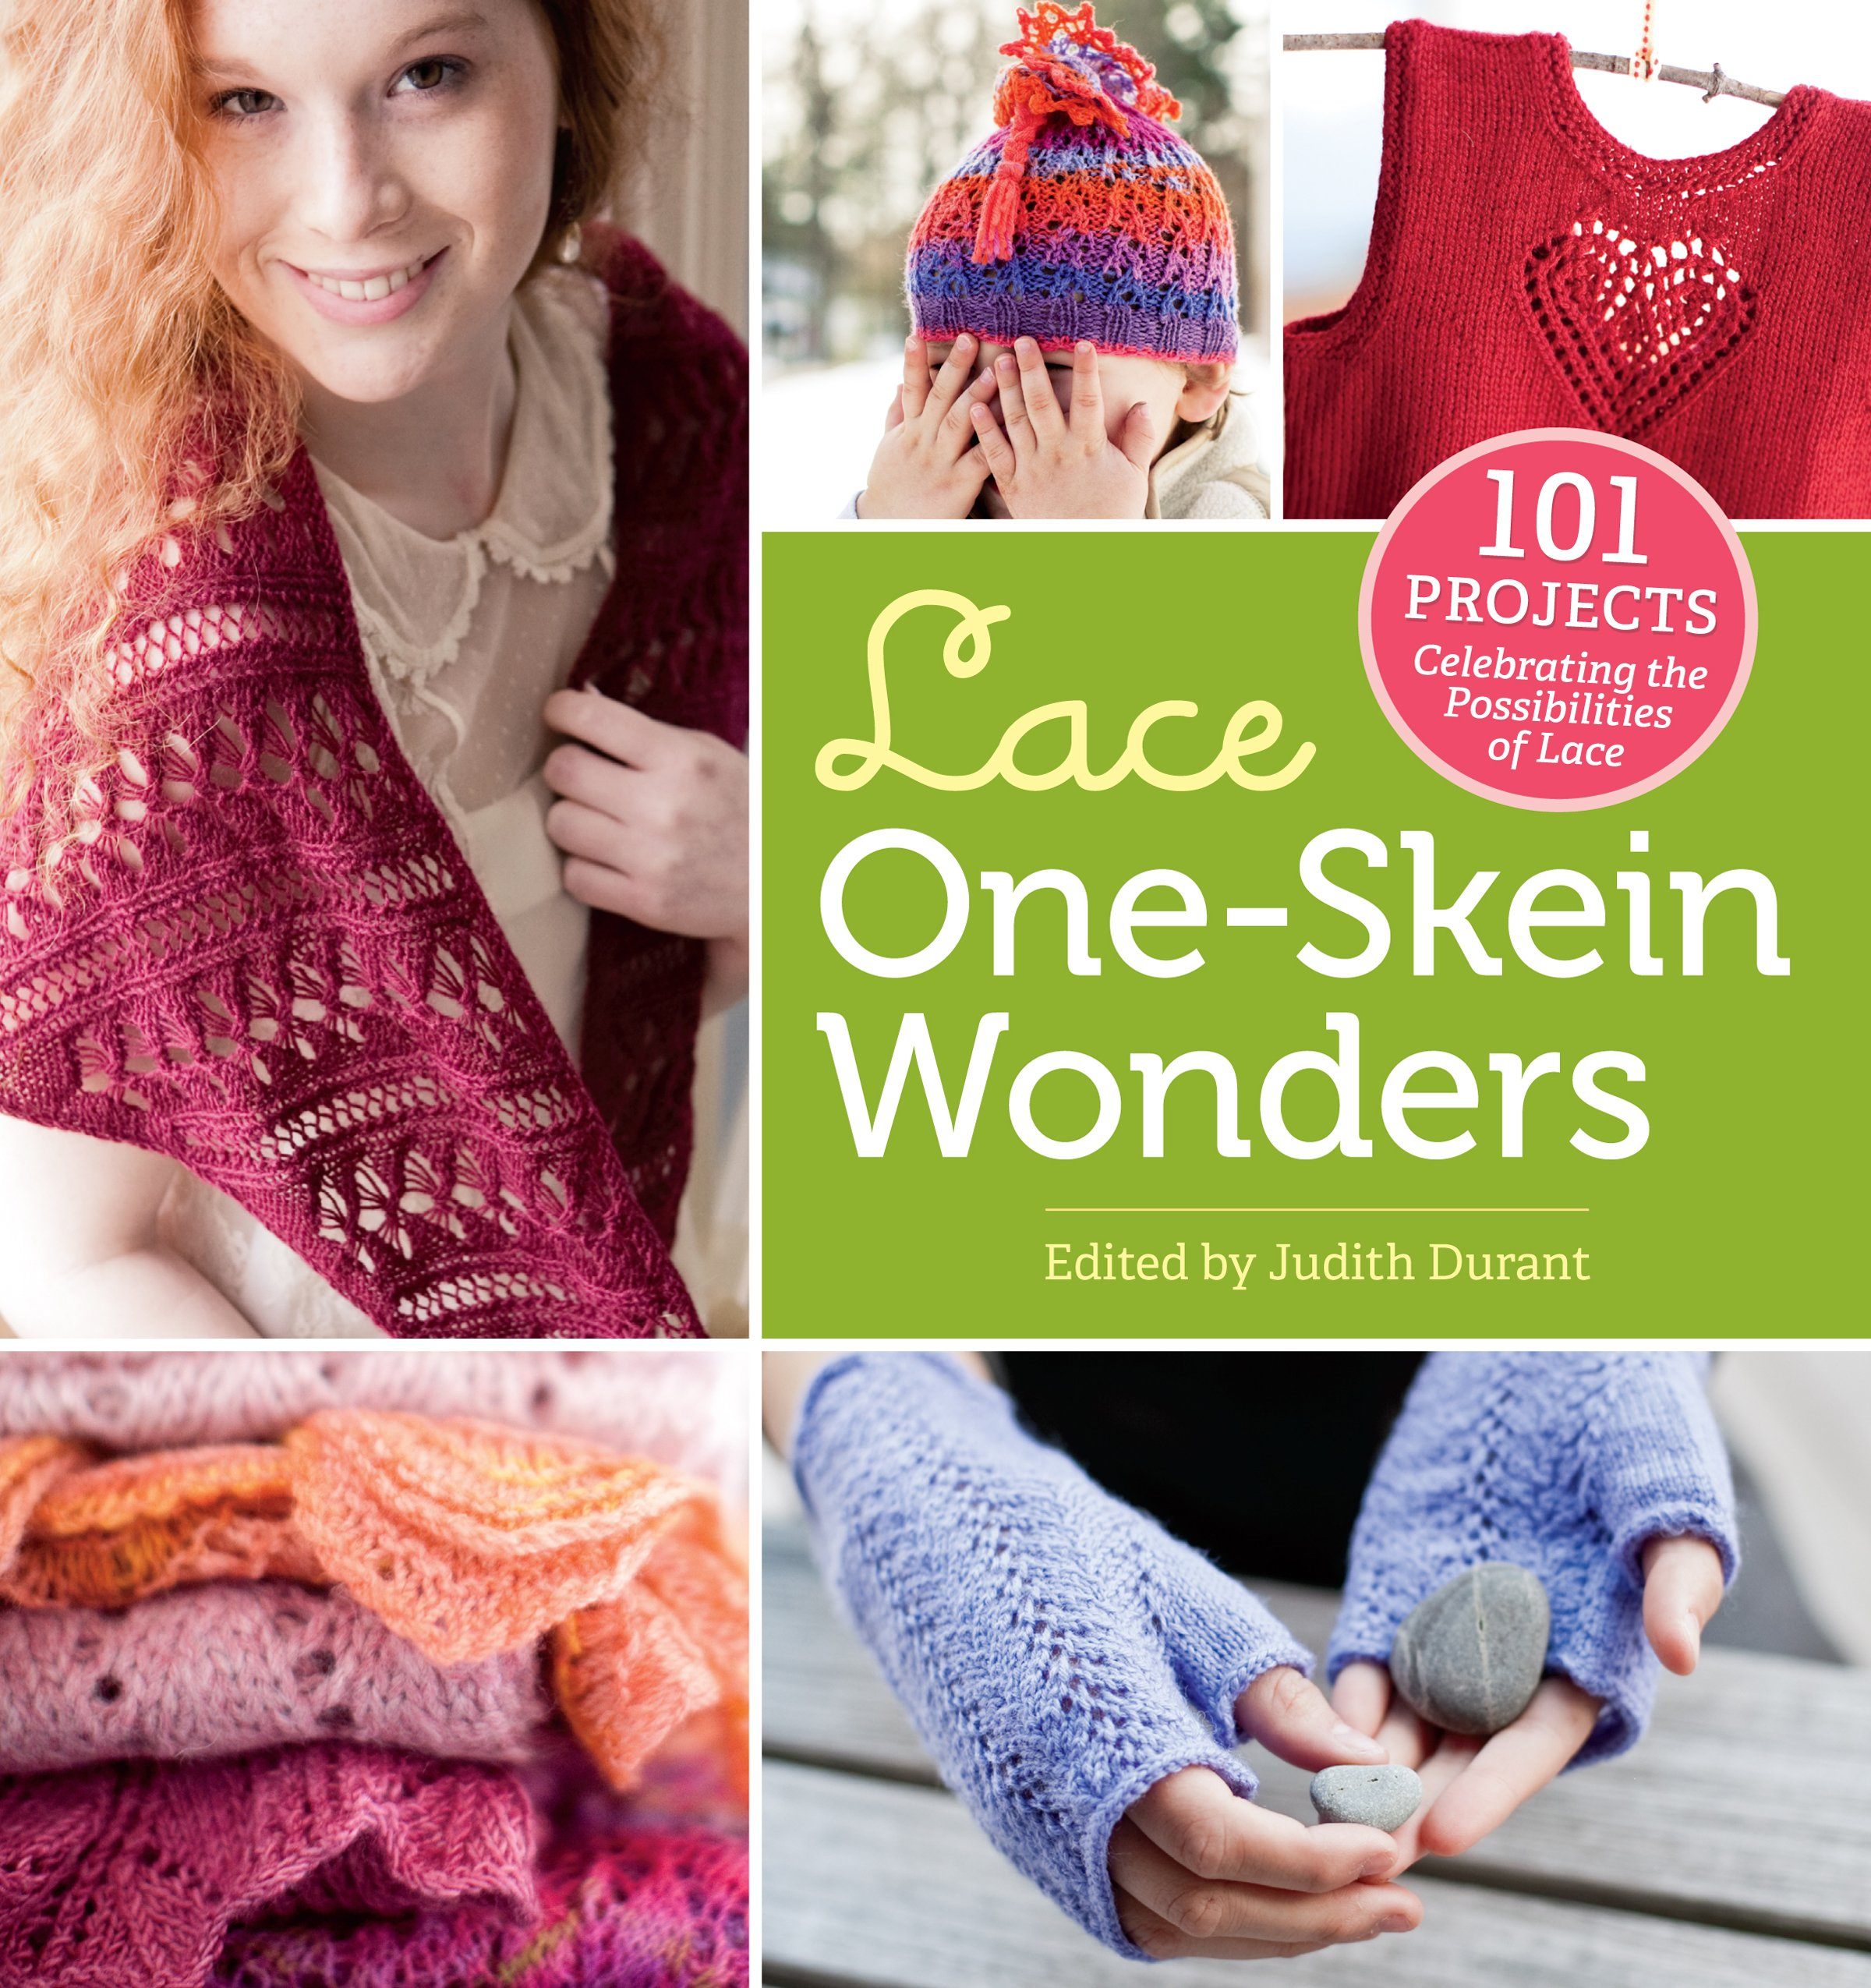 lace-one-skein-wonders-101-projects-celebrating-the-possibilities-of-lace